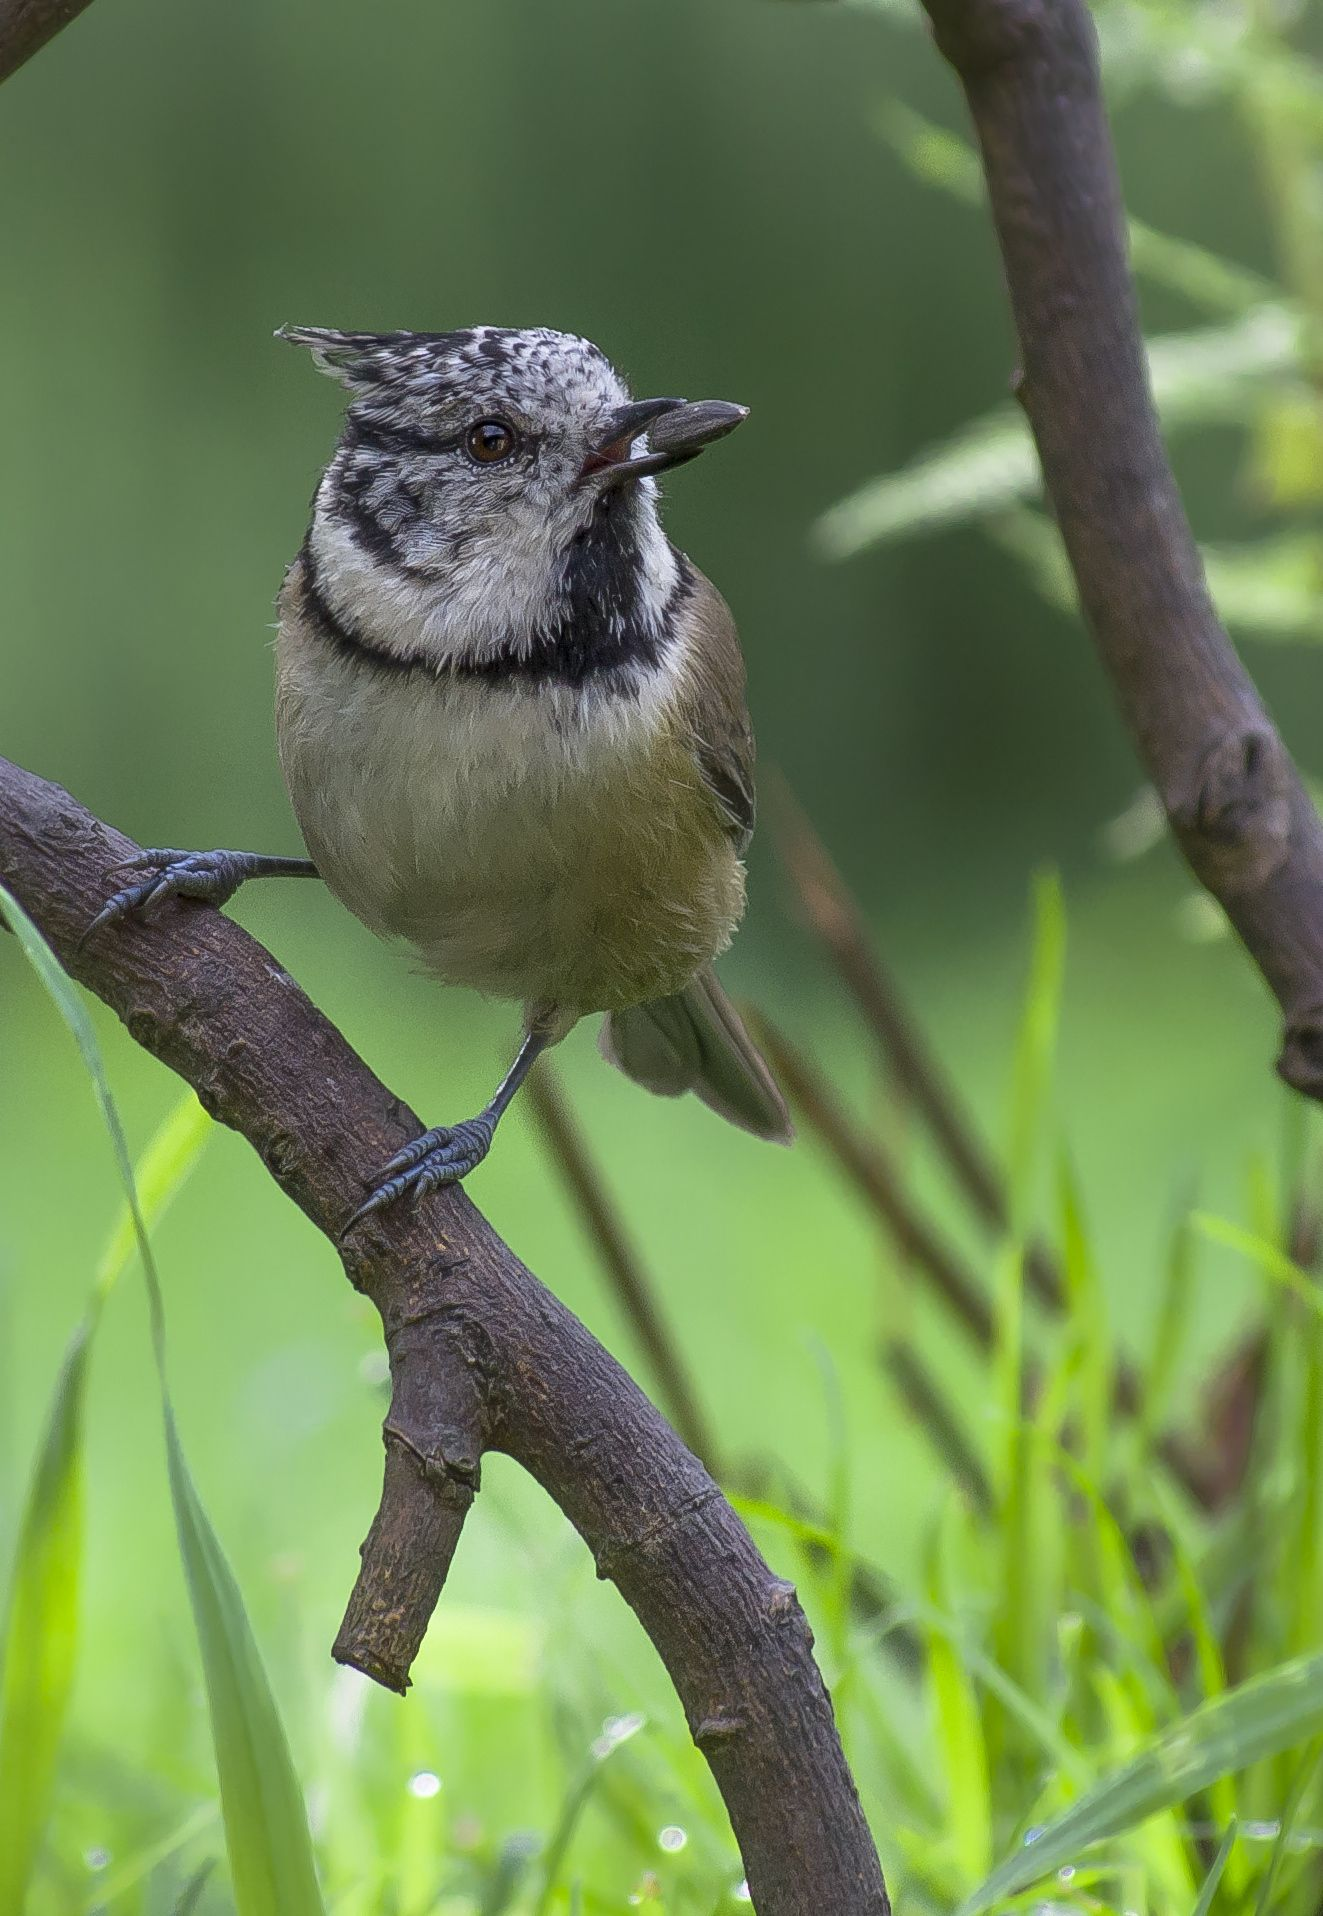 Crested Tit / Haubenmeise by Andre Heß on 500px